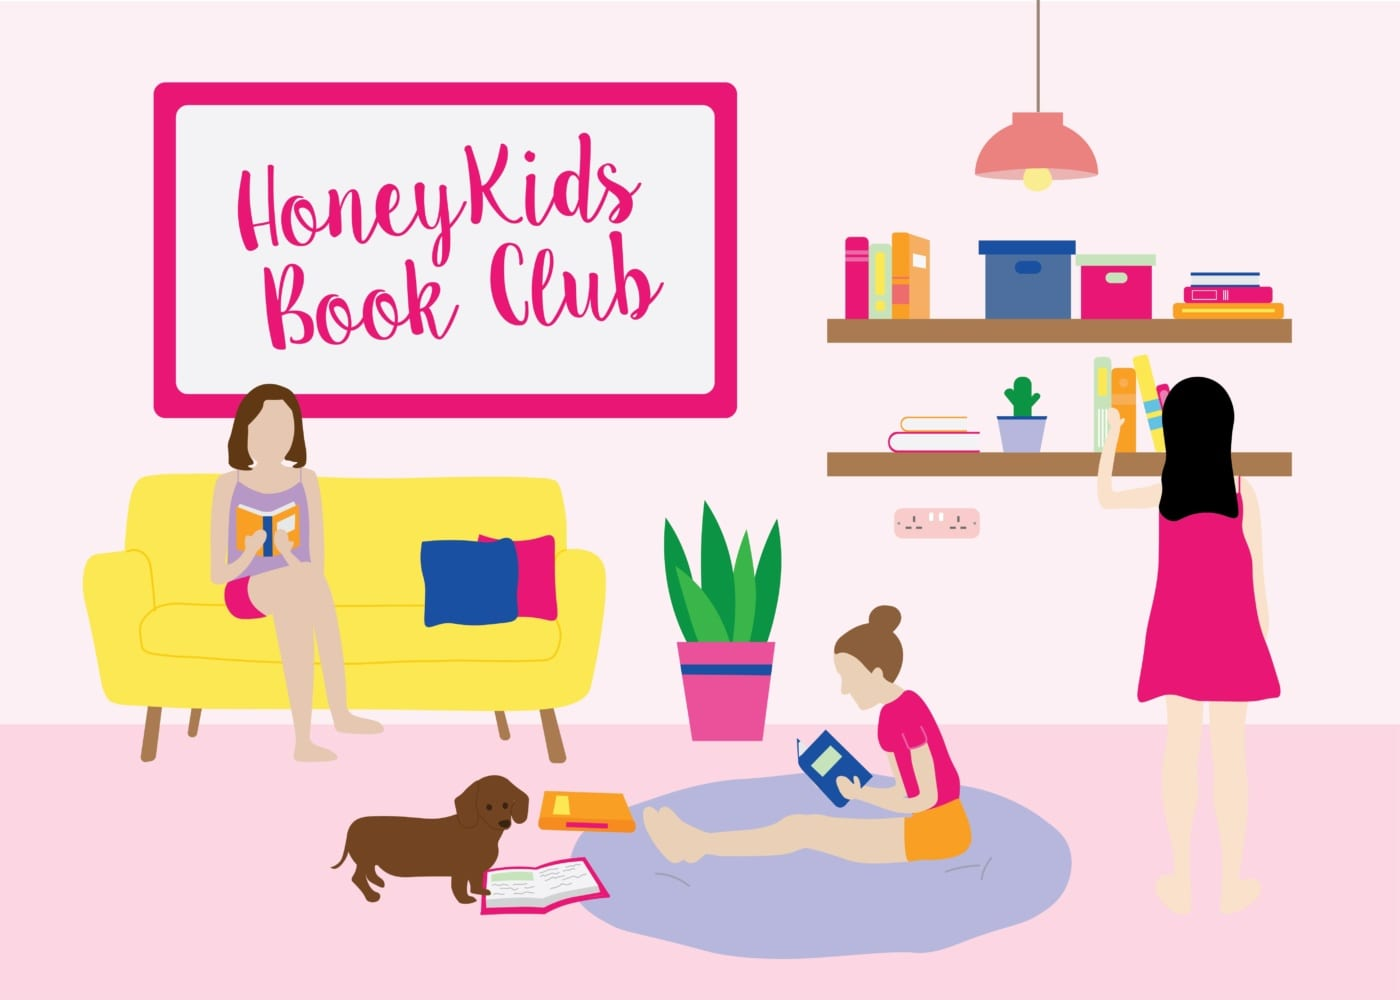 Hey bookworms, HoneyKids is launching a Book Club!